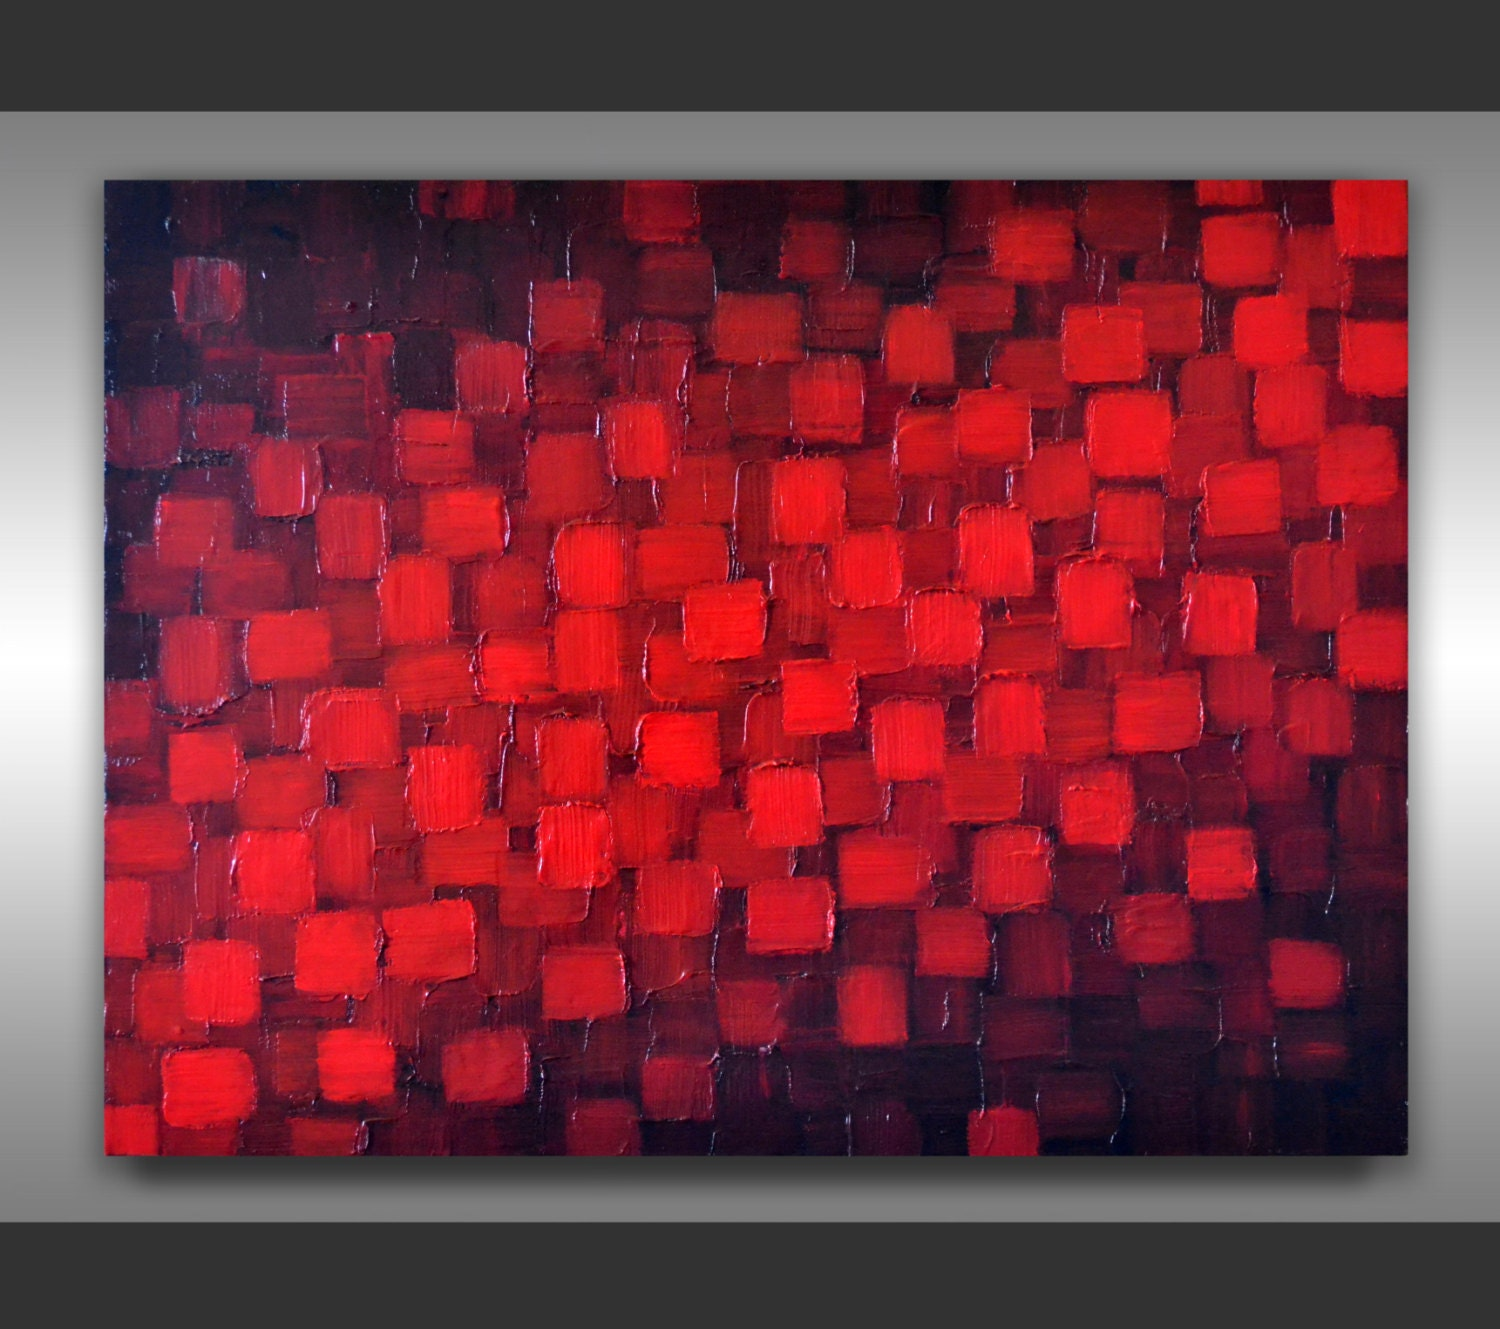 Original Art Abstract Black Red Painting 18x24 Textured Modern Palette Knife Geometric Black Red Painting Abstract Heavy Texture Wall Art - ZarasShop